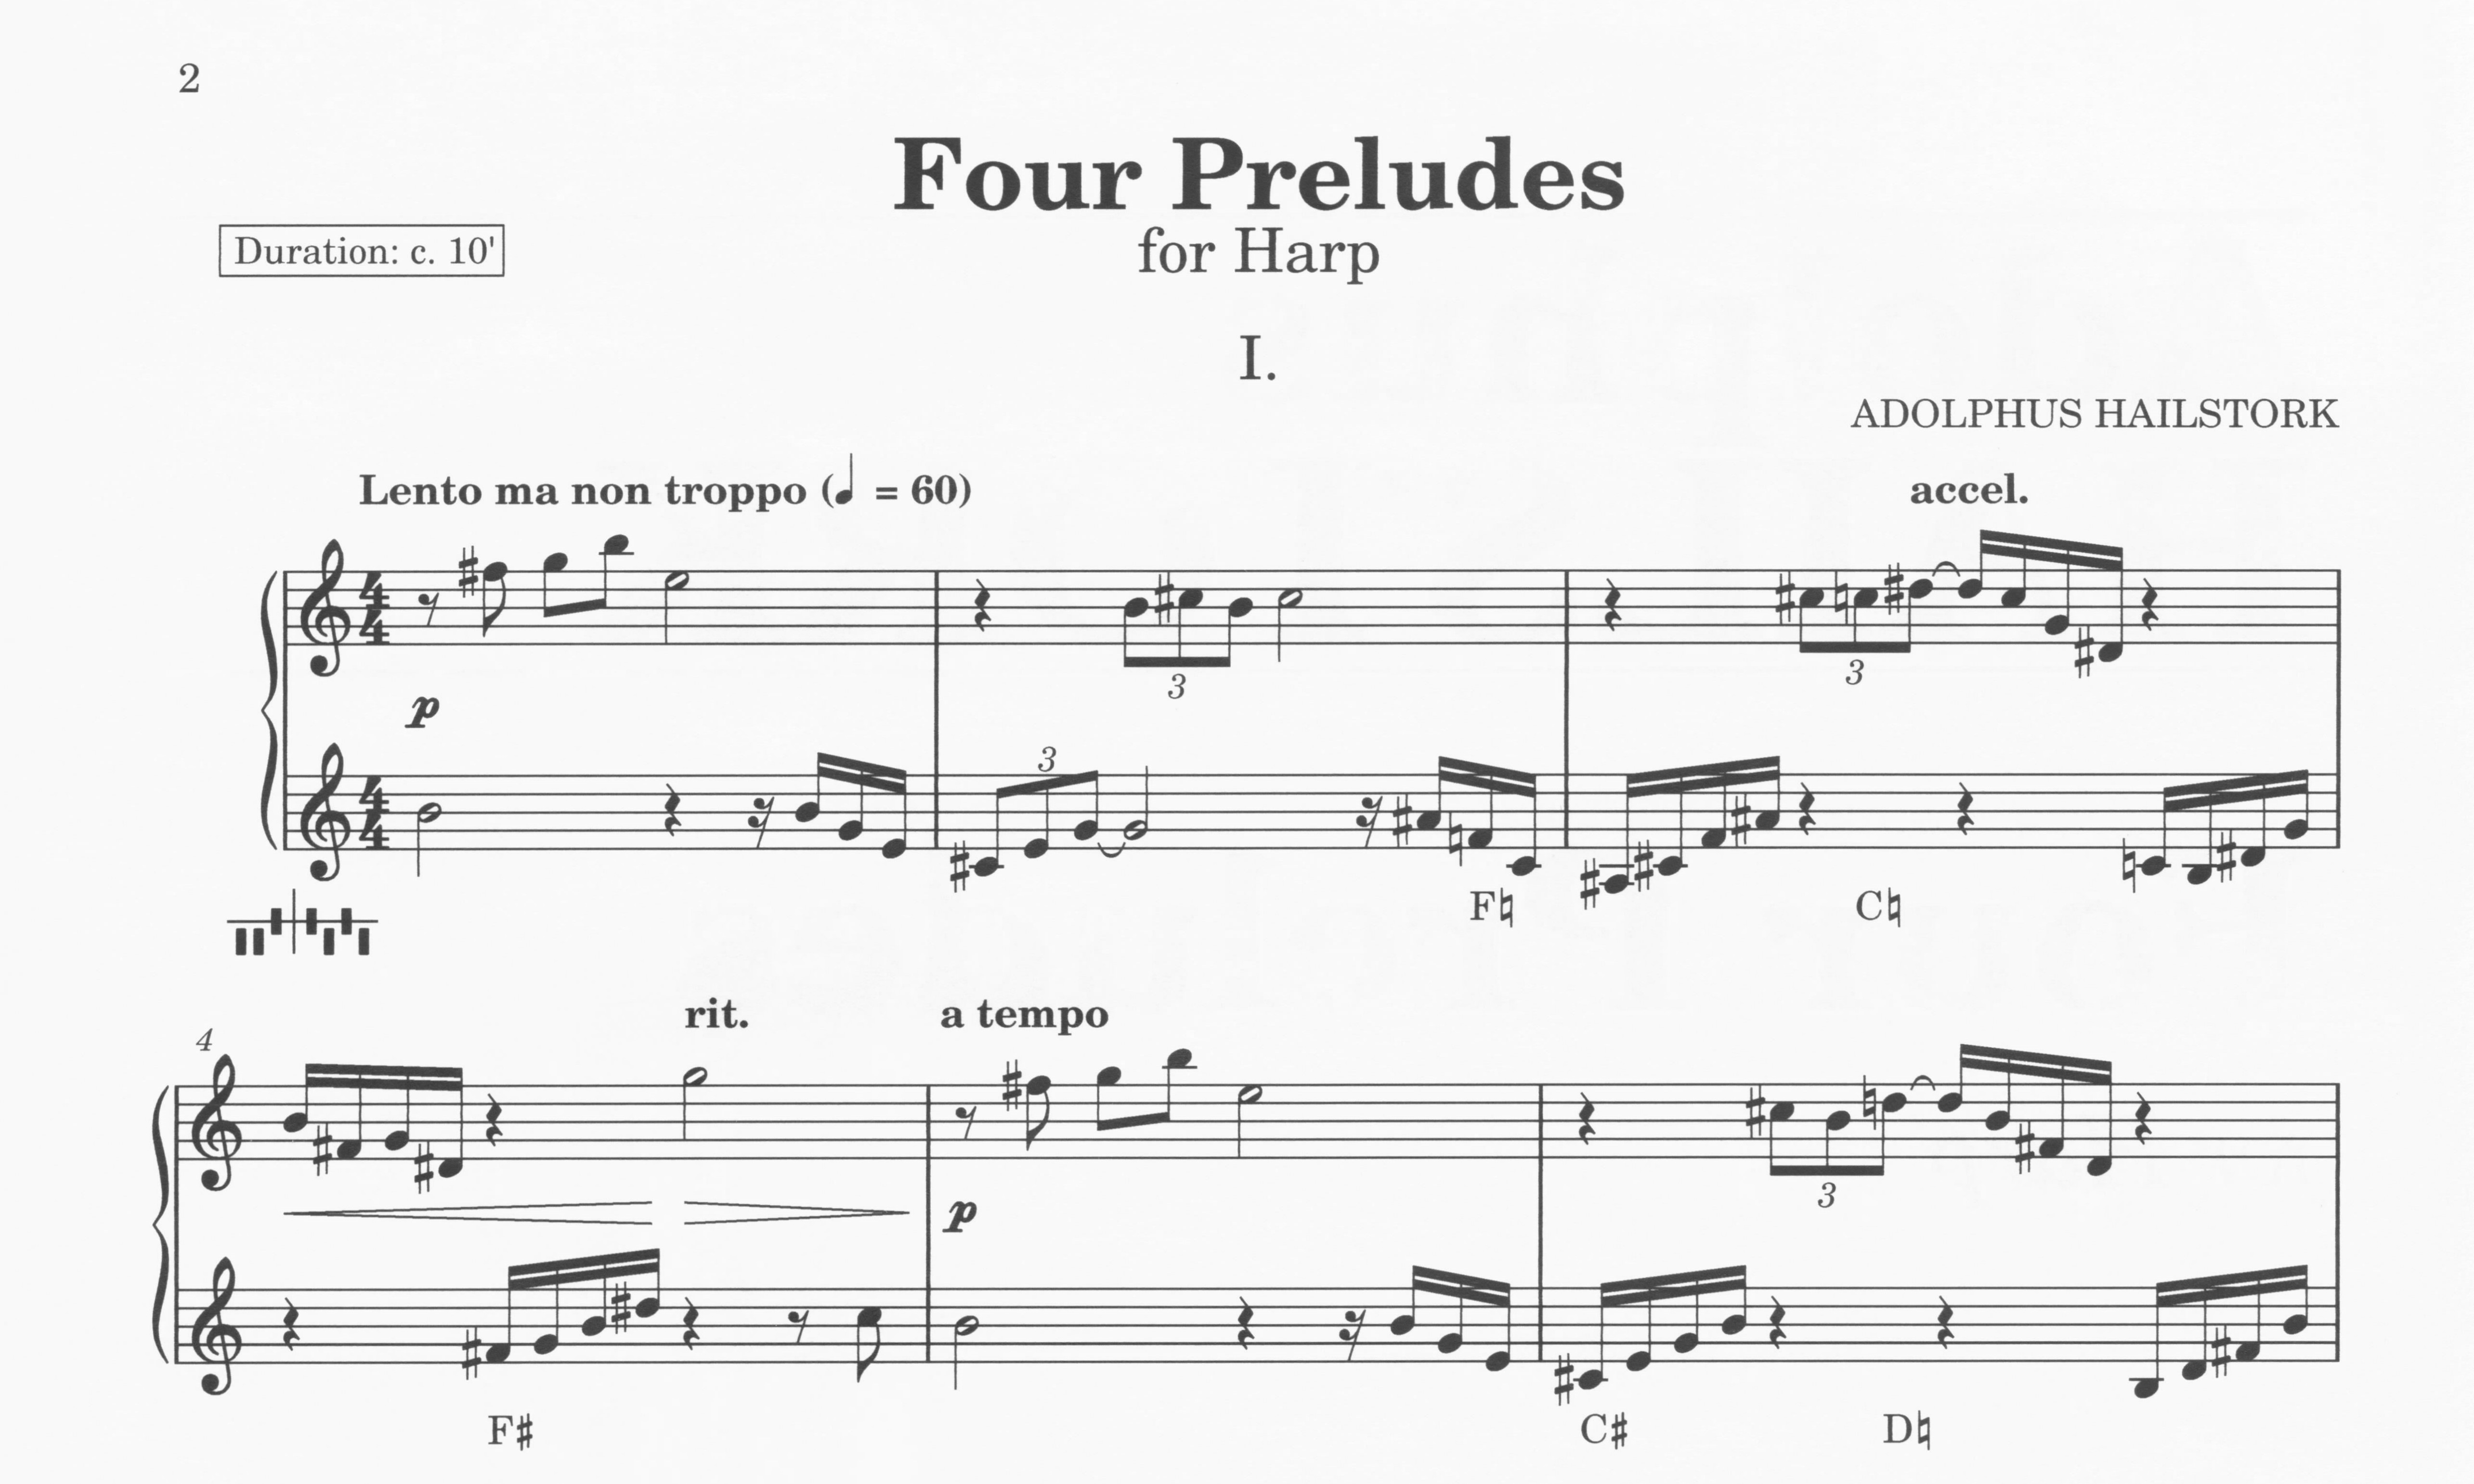 First page of Four Preludes for Harp